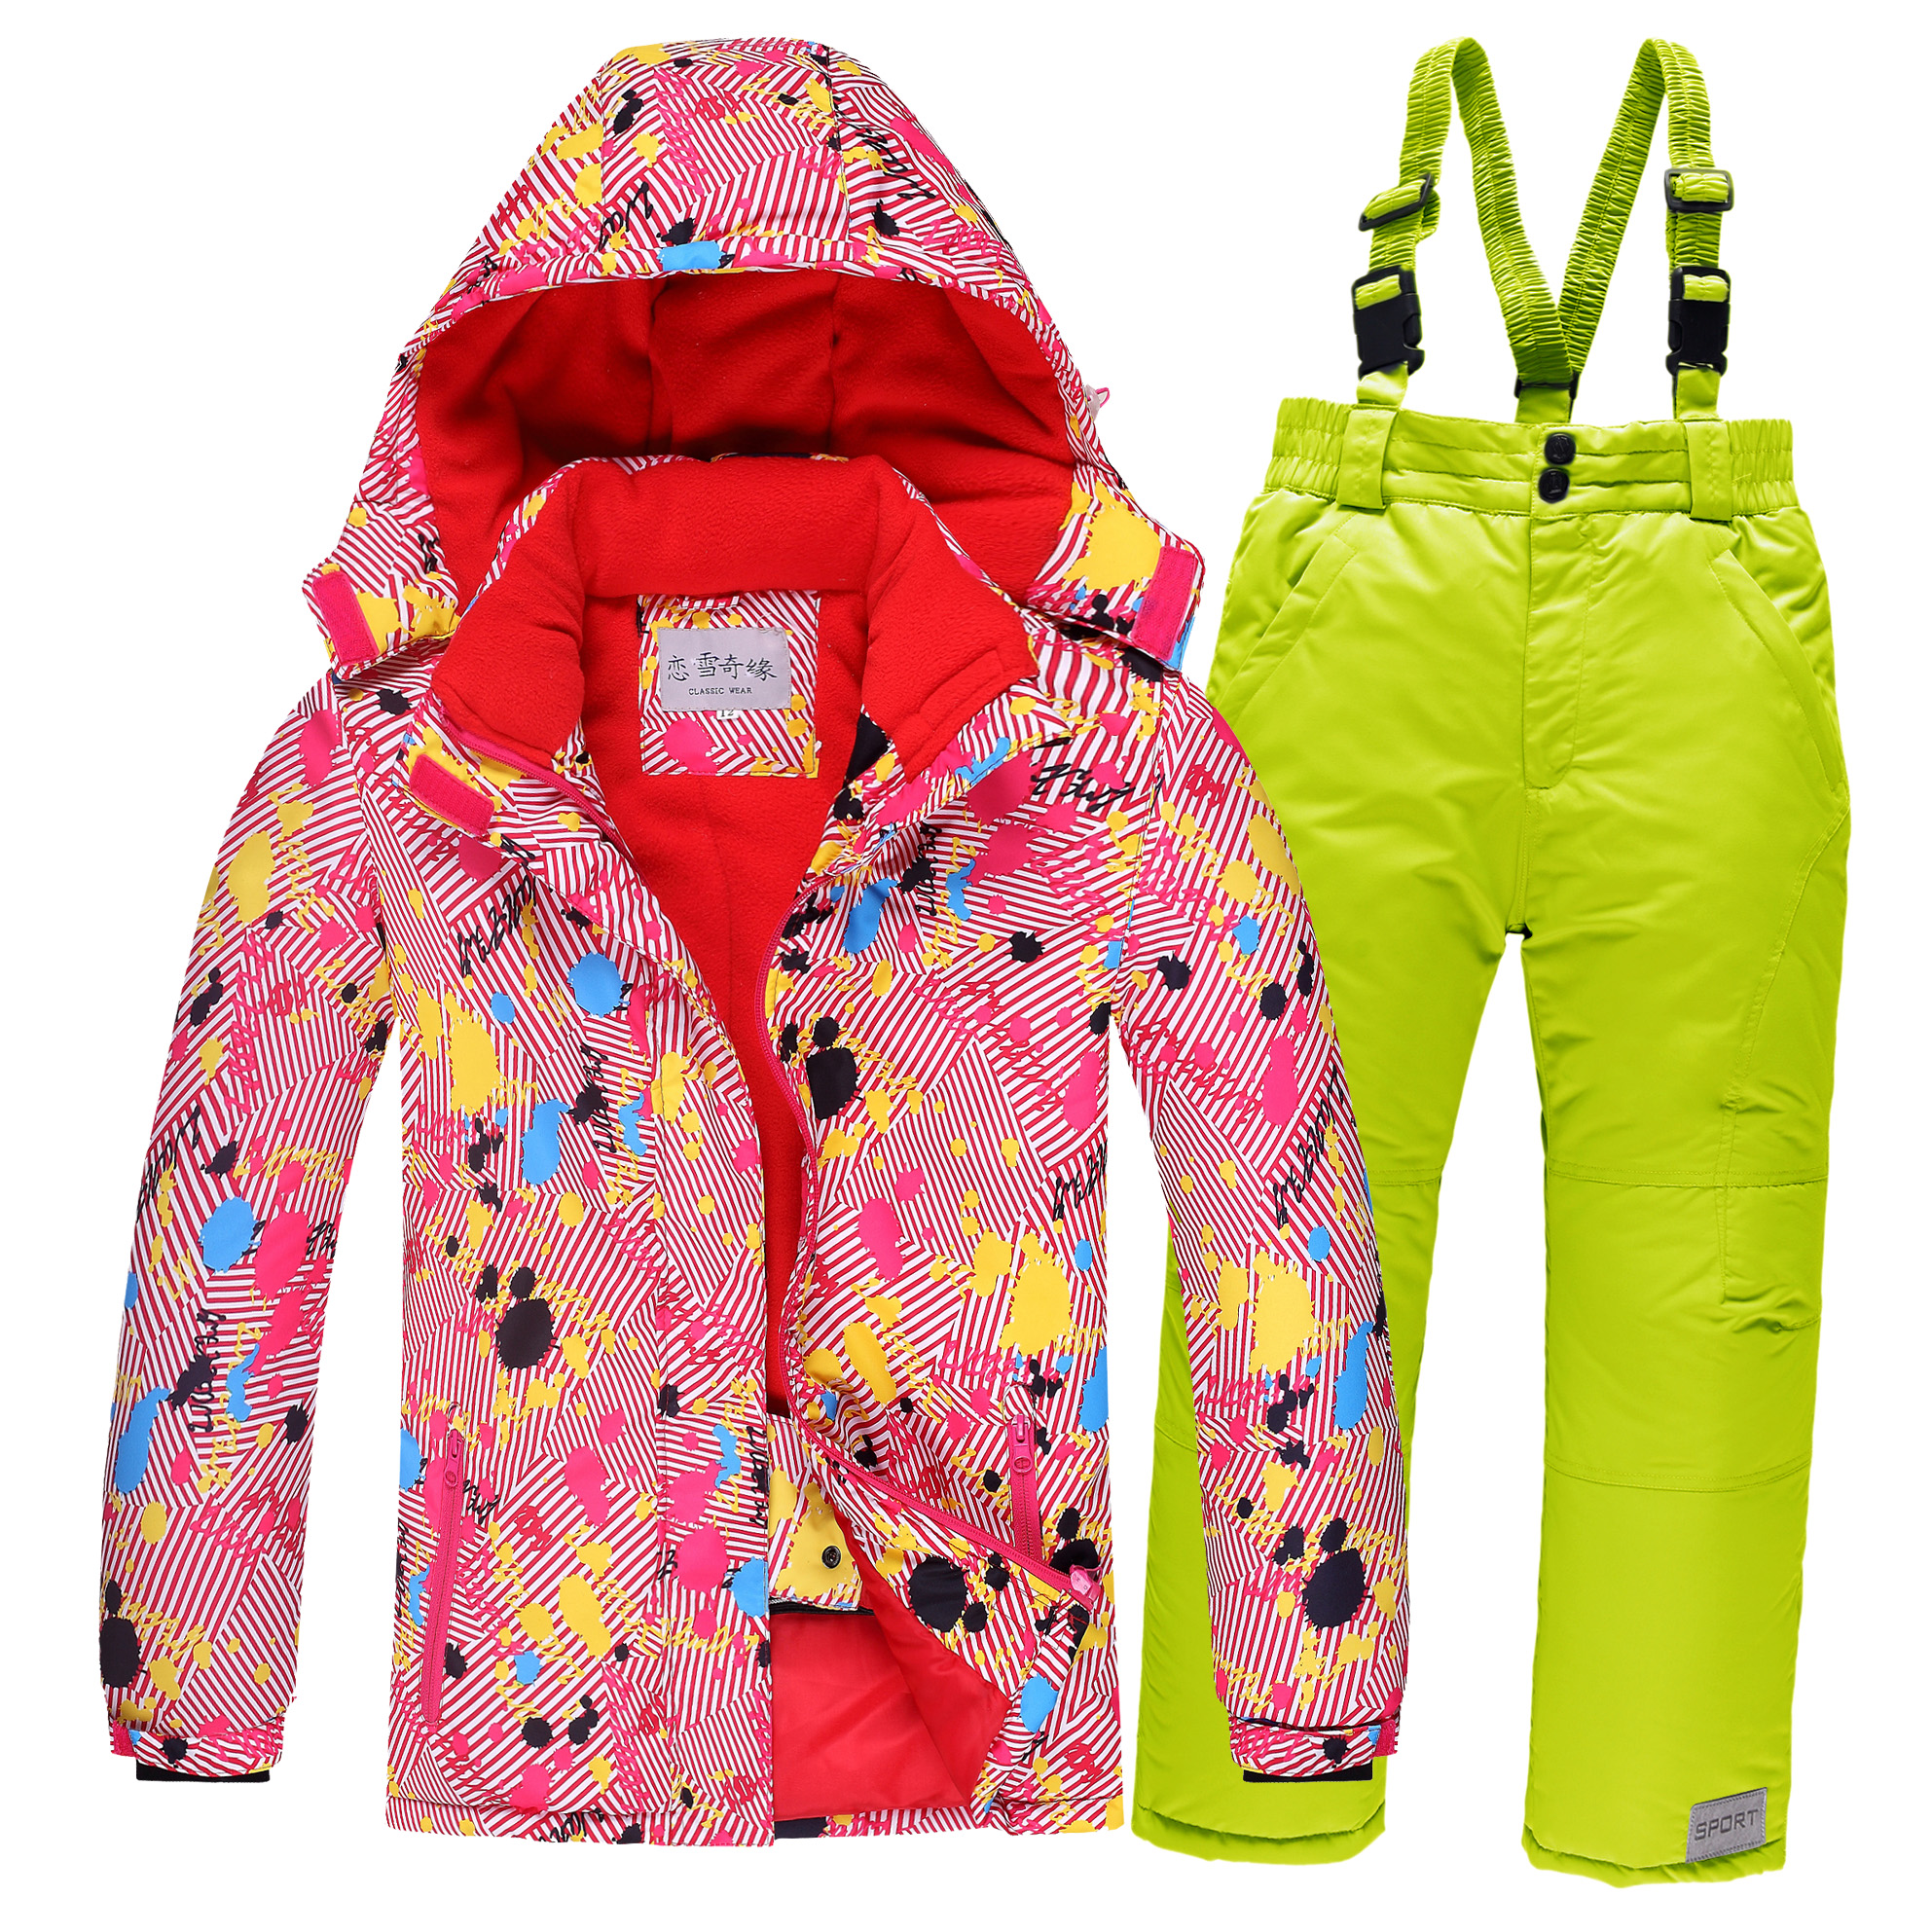 OLEKID -30 Degree Russia Winter Children Girls Sport Suit Waterproof Warm Boys Jacket And Overalls Snowsuit 3-16 Years Ski Suit new 2017 winter baby thickening collar warm jacket children s down jacket boys and girls short thick jacket for cold 30 degree